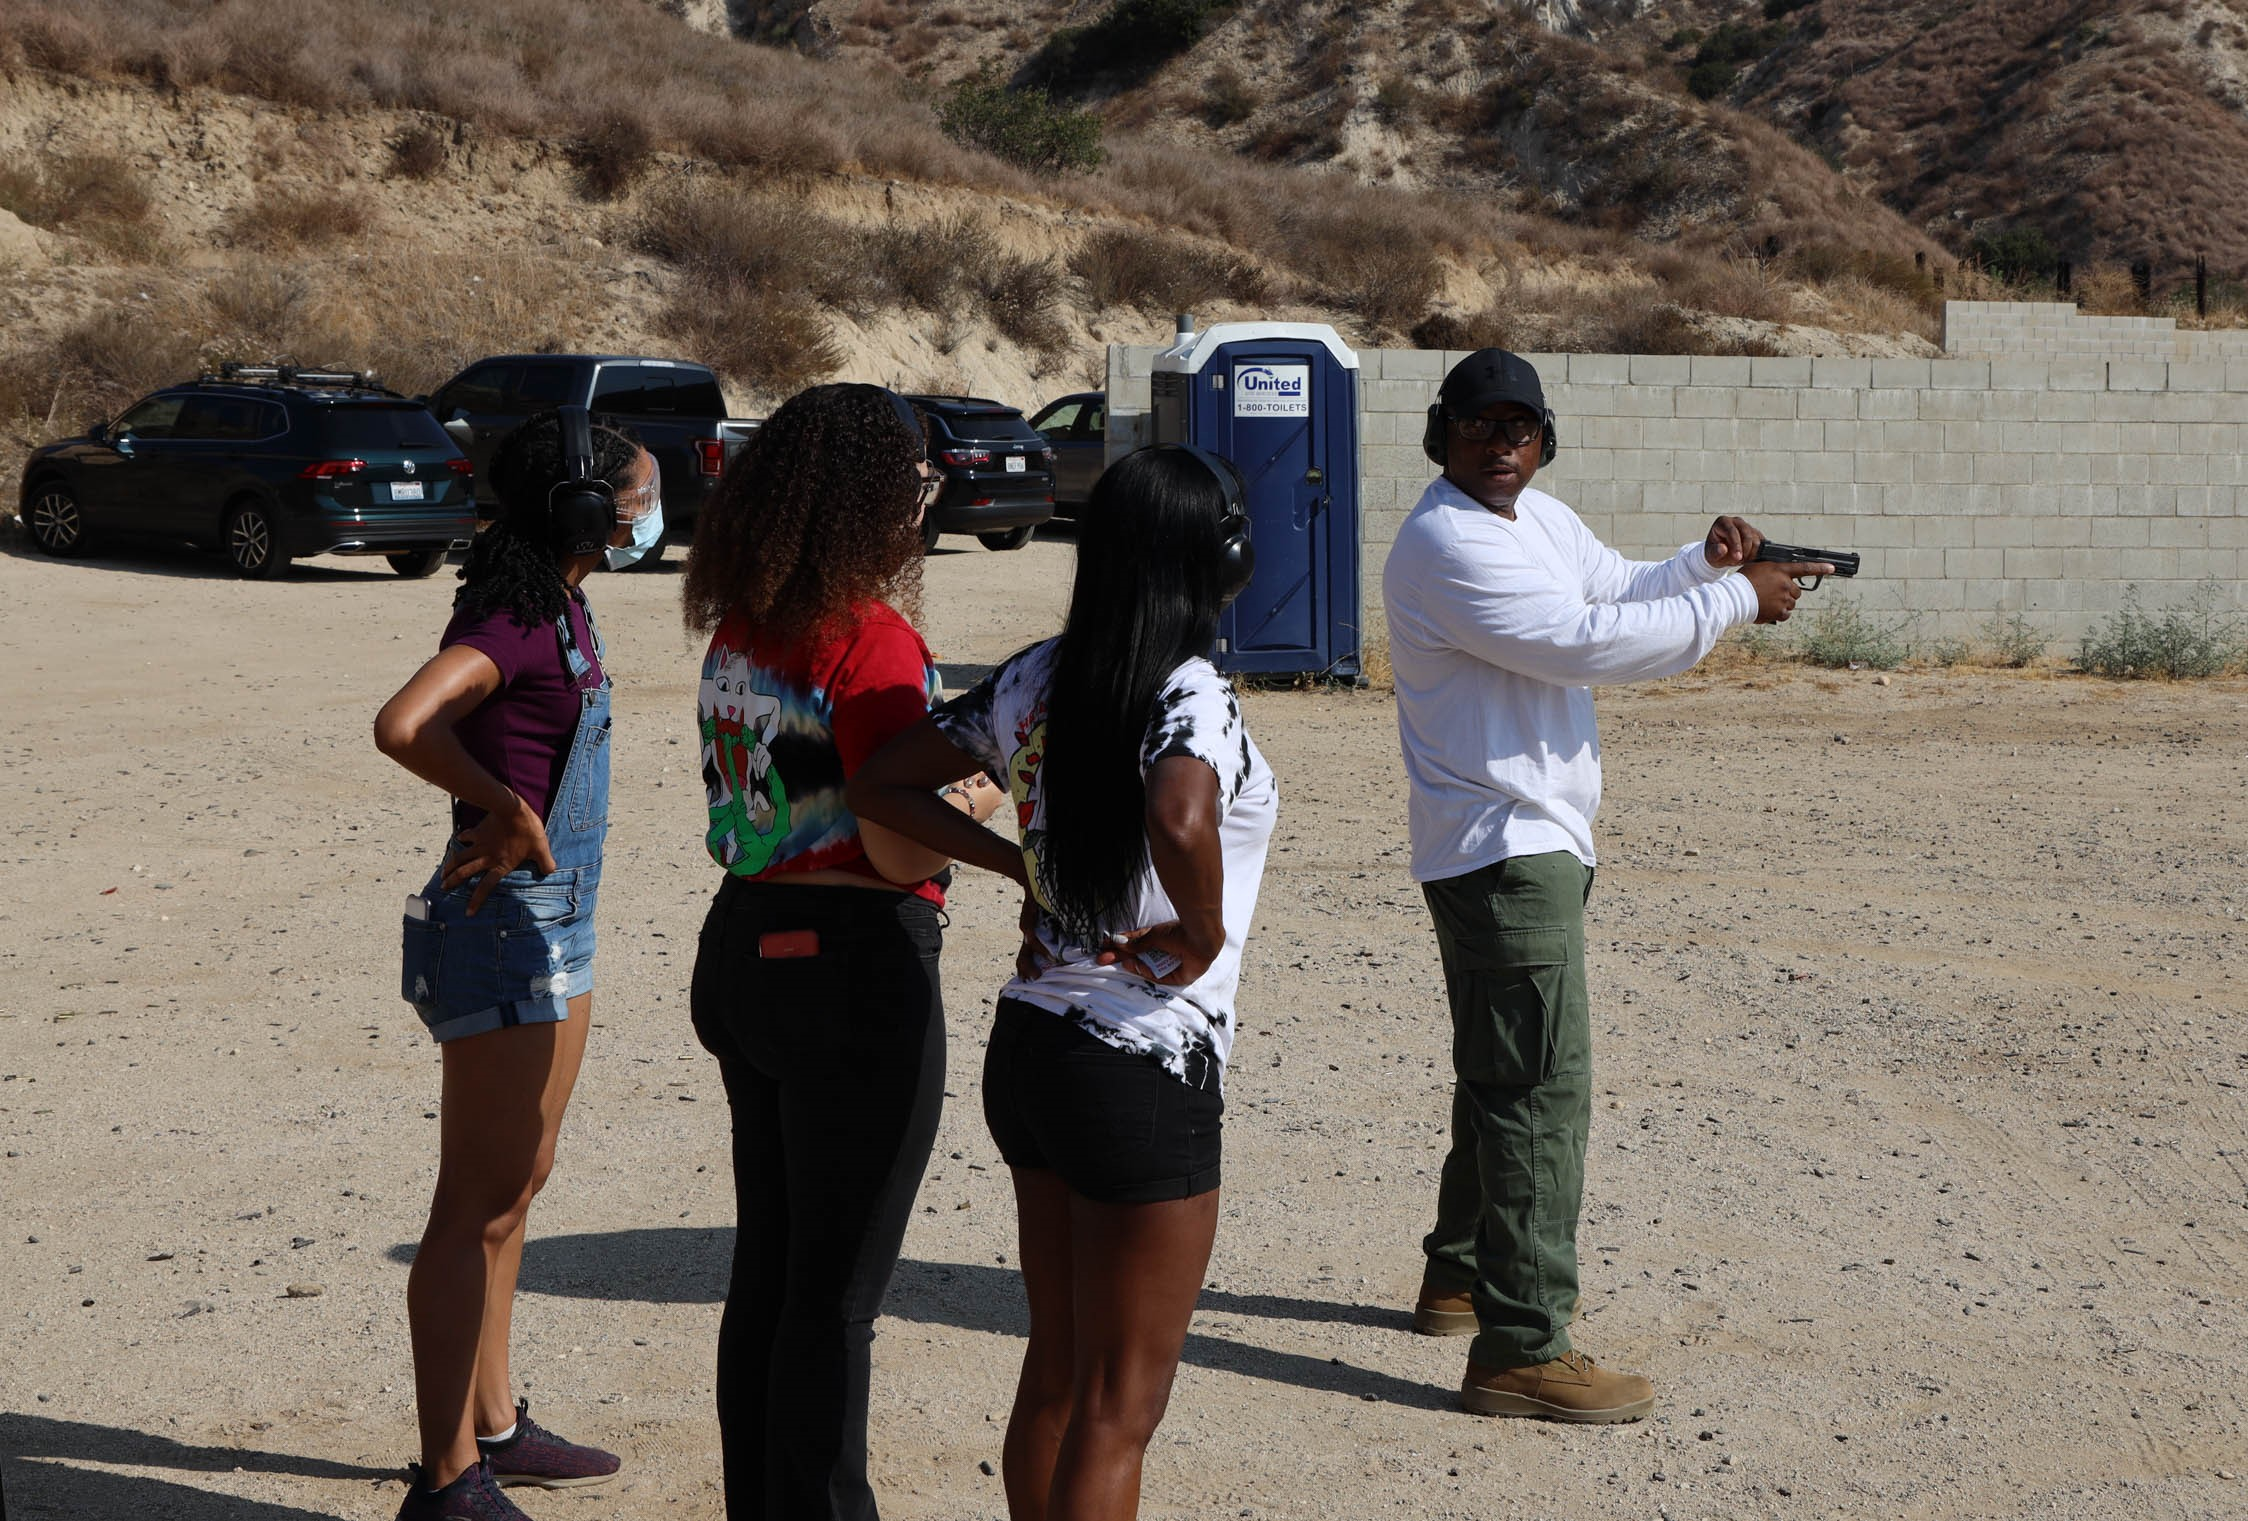 Image of four people in the desert. The firearm instructor has a black hand gun pointed down rainge, he has a white shrit, ball cap and hearing protection on. he has his face turned towards three women who are behind him, the woment are watching and listening to him.